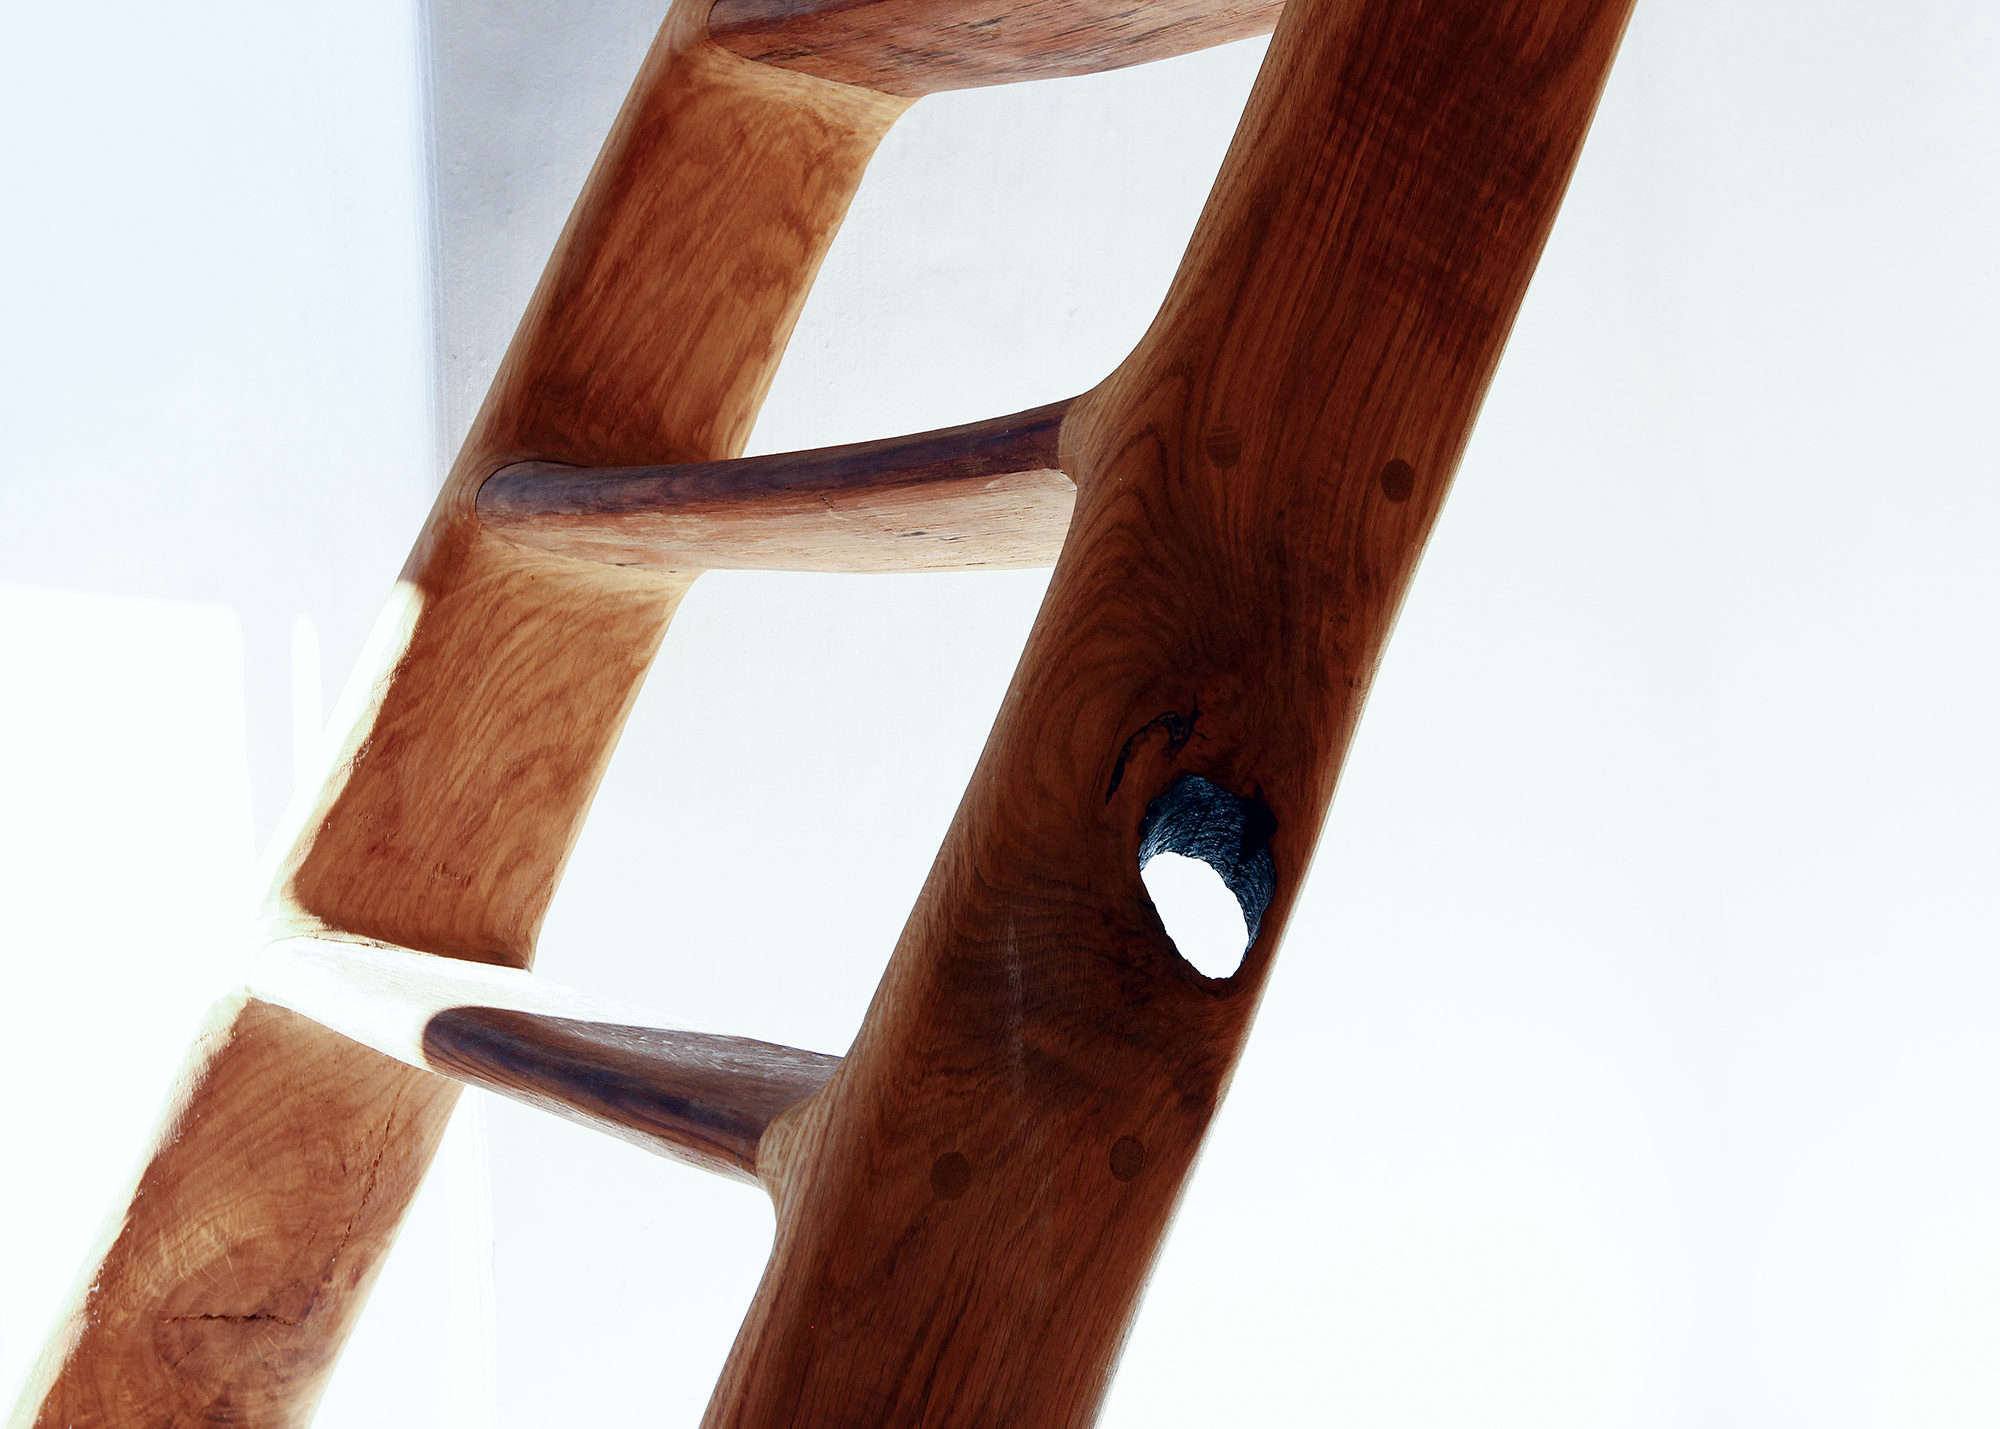 Valentin designed and built the stair usingreclaimed oak wine barrels, which he carved to achieve a curved shape.